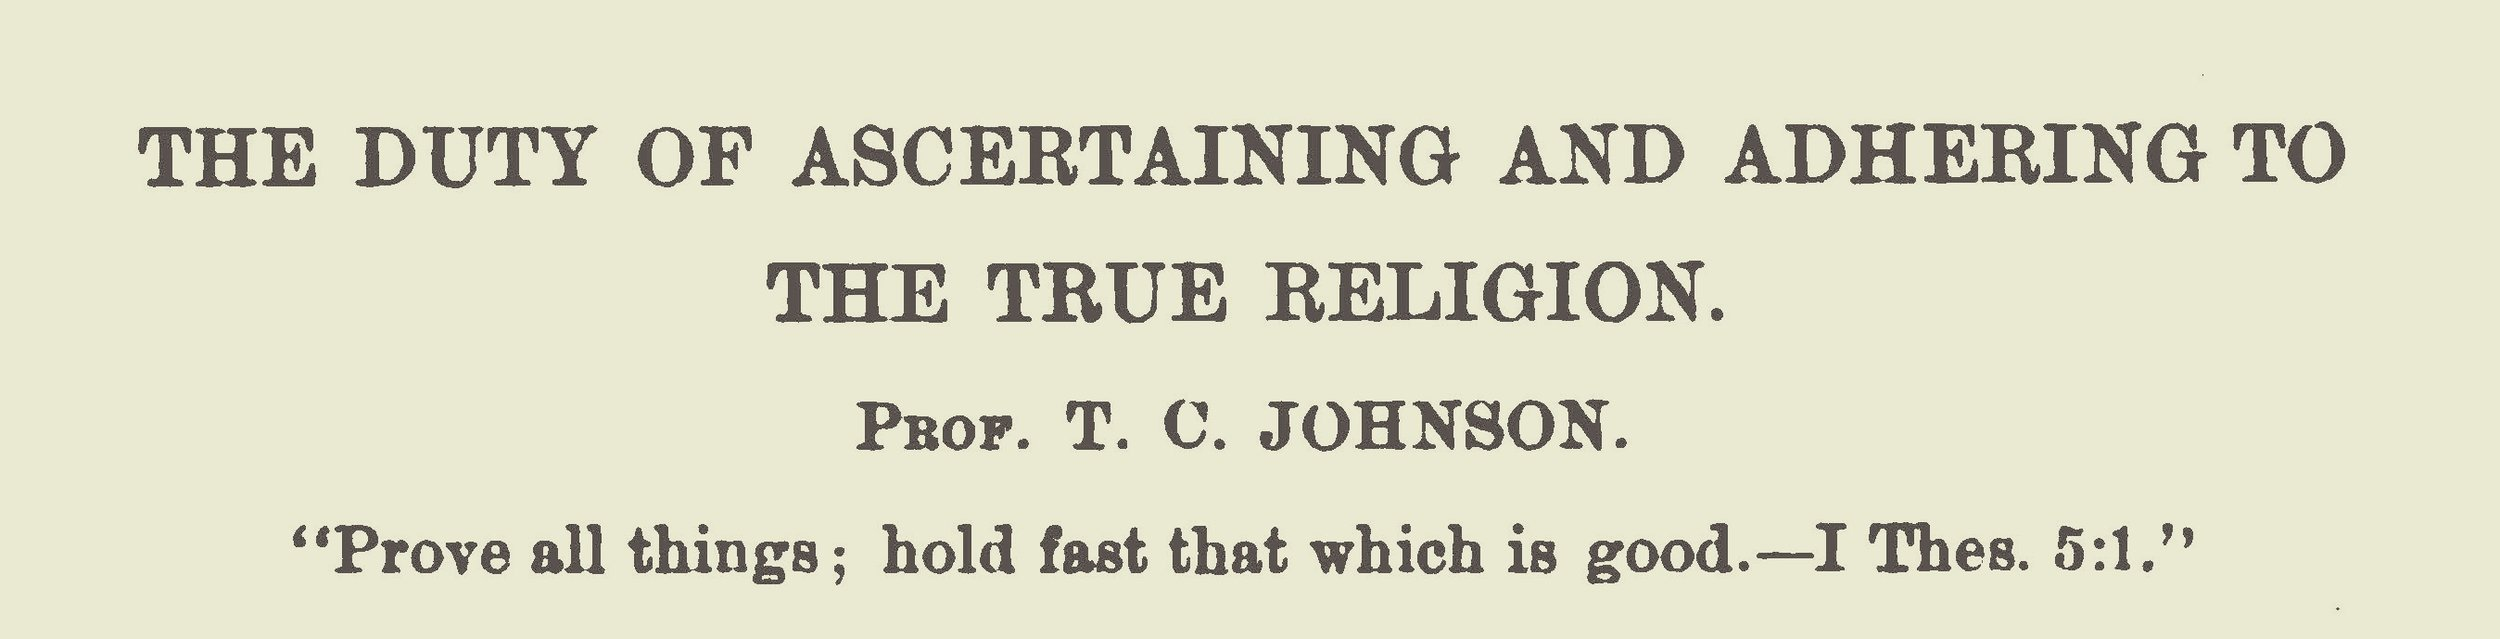 Johnson, Thomas Cary, The Duty of Ascertaining and Adhering to the True Religion Title Page.jpg